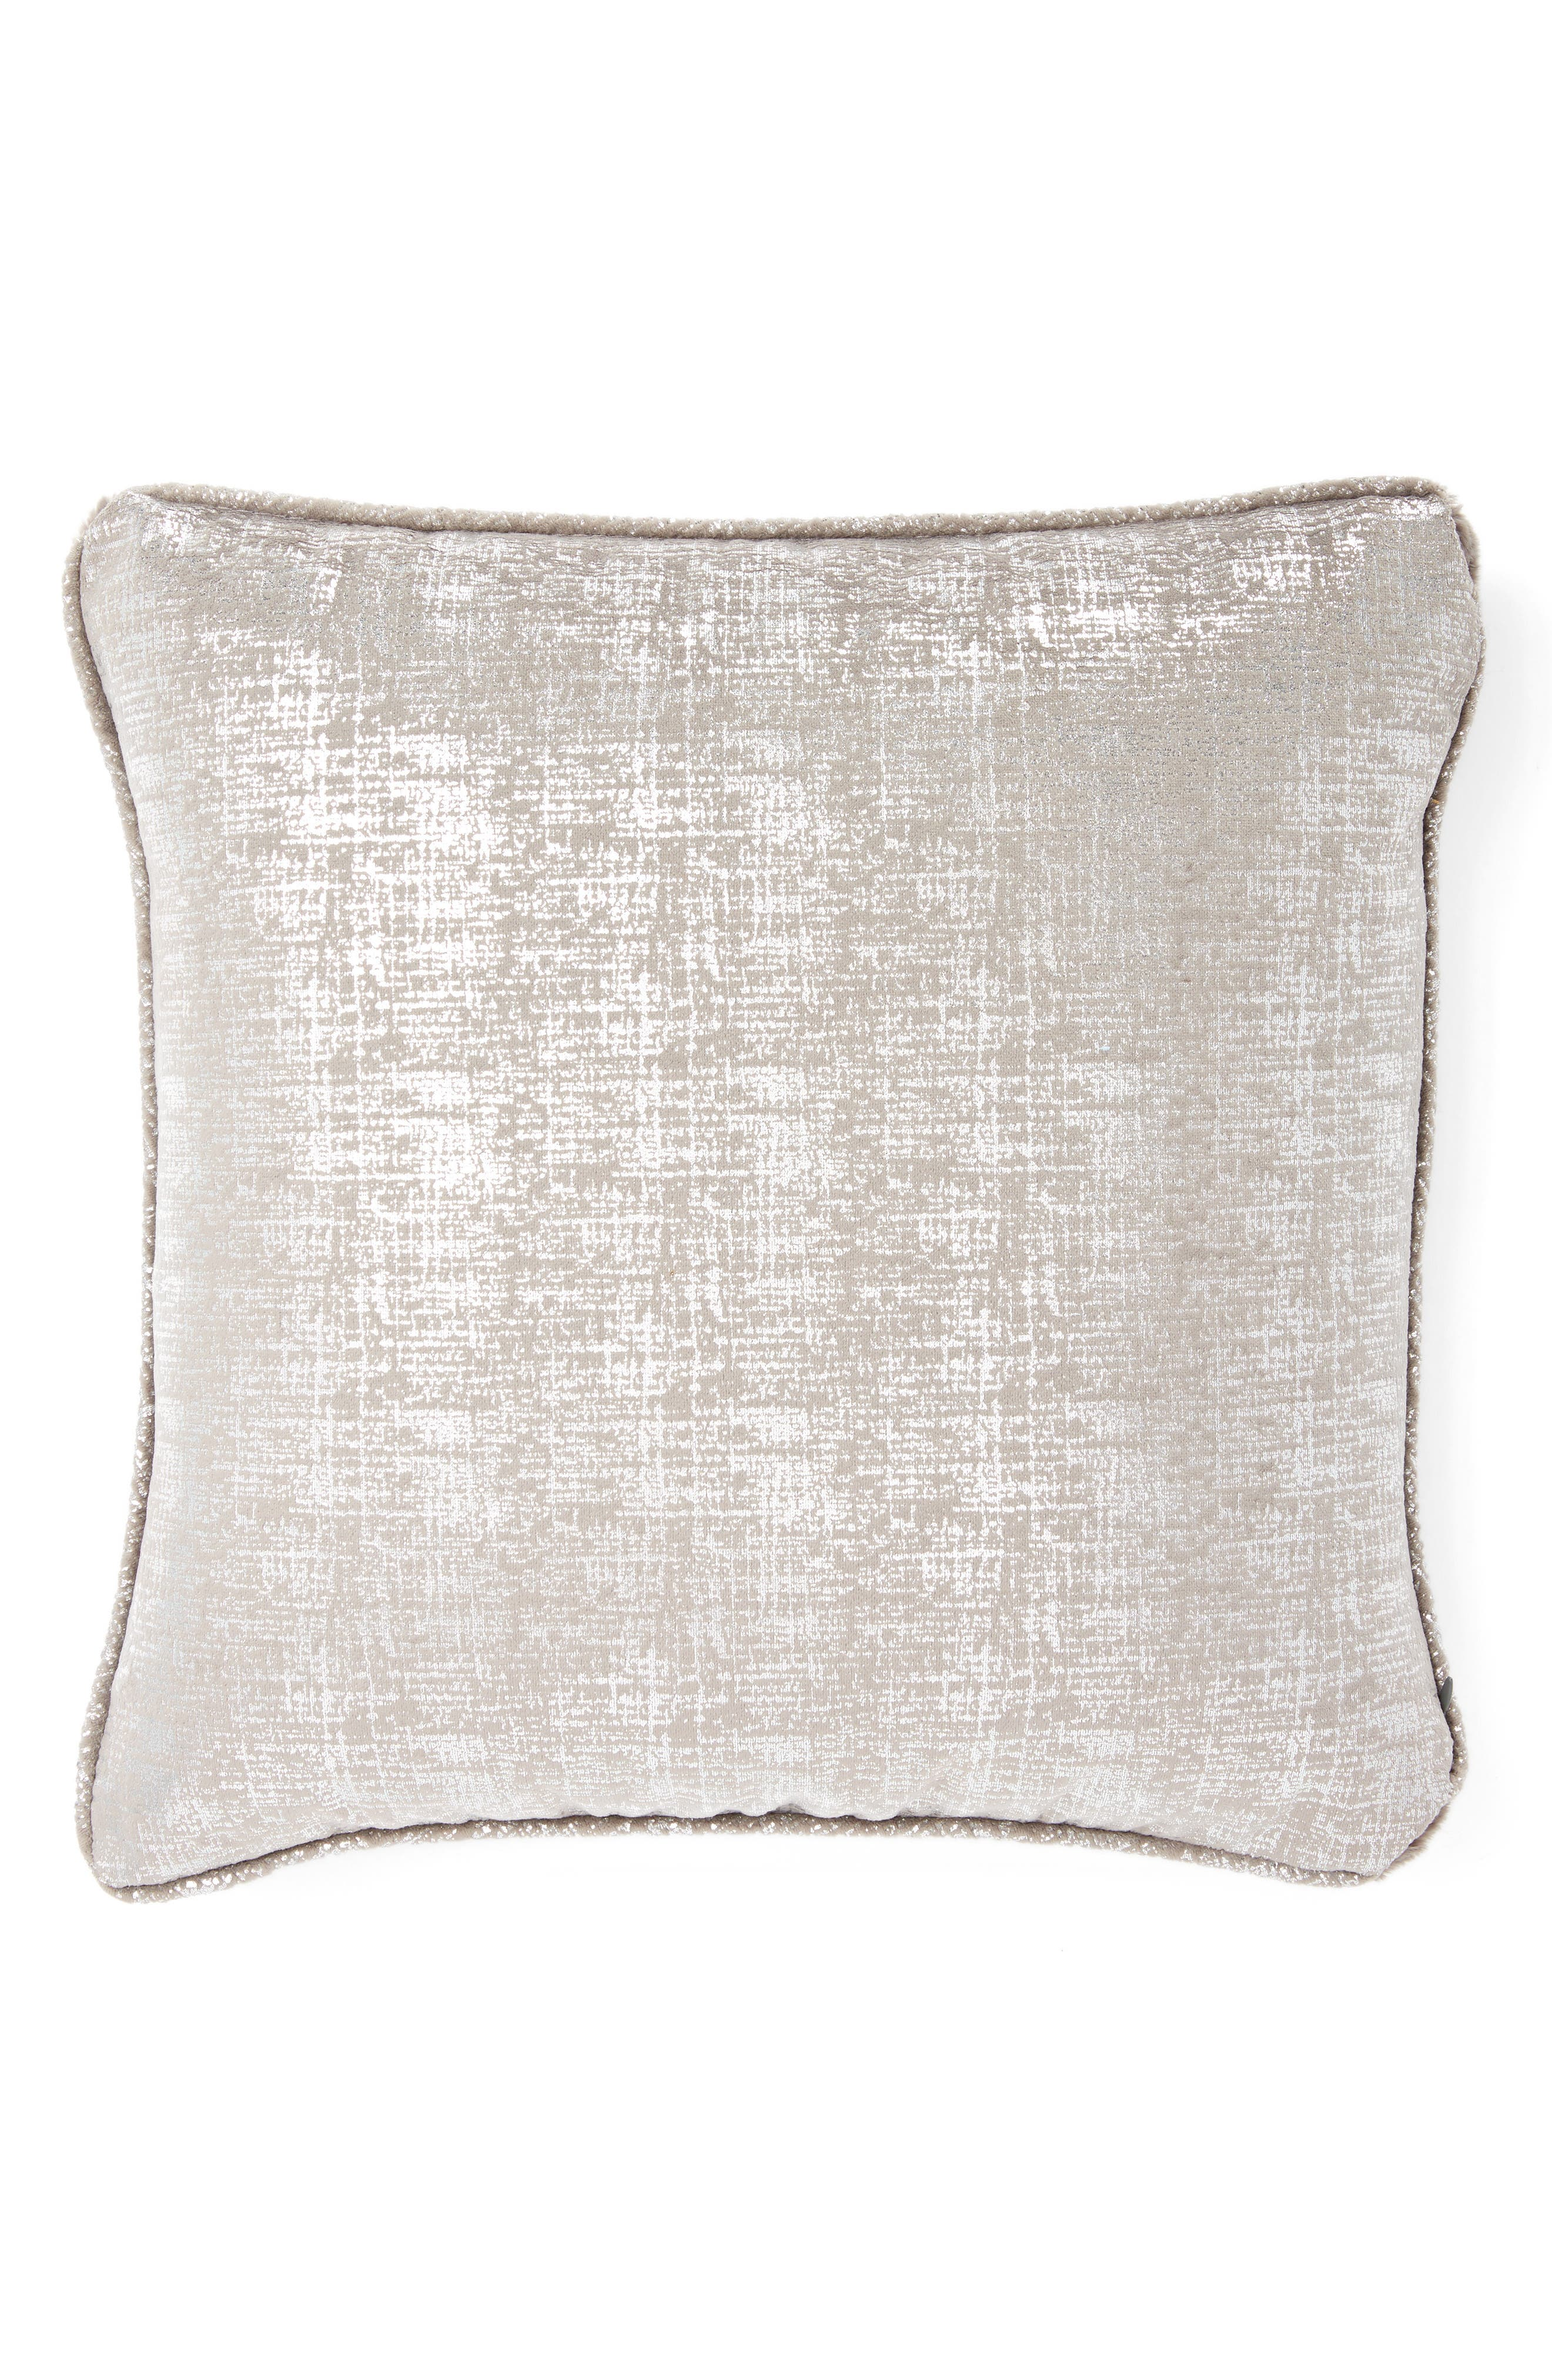 GIRAFFE AT HOME,                             Luxe<sup>™</sup> Lustre Pillow,                             Alternate thumbnail 2, color,                             020